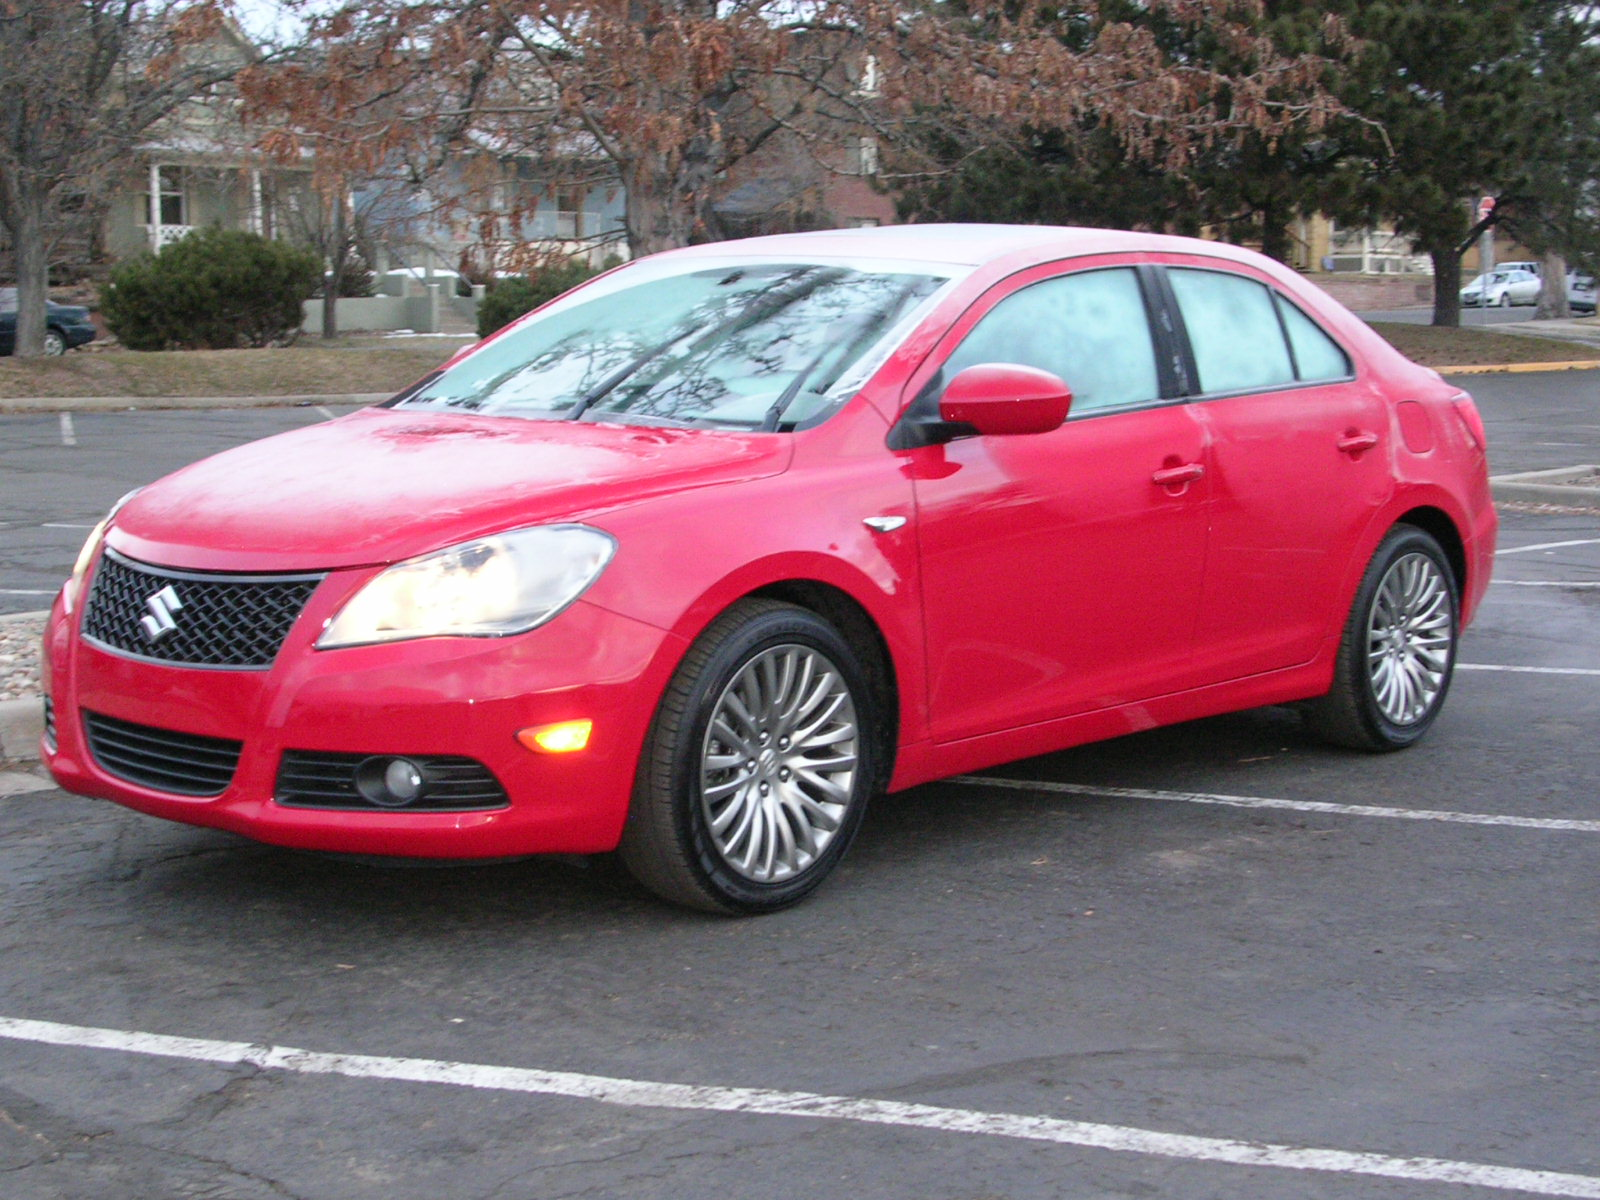 suzuki denver auto solutions rh denverautosolutions wordpress com 2010 Suzuki Kizashi Accessories 2011 Suzuki Kizashi SE